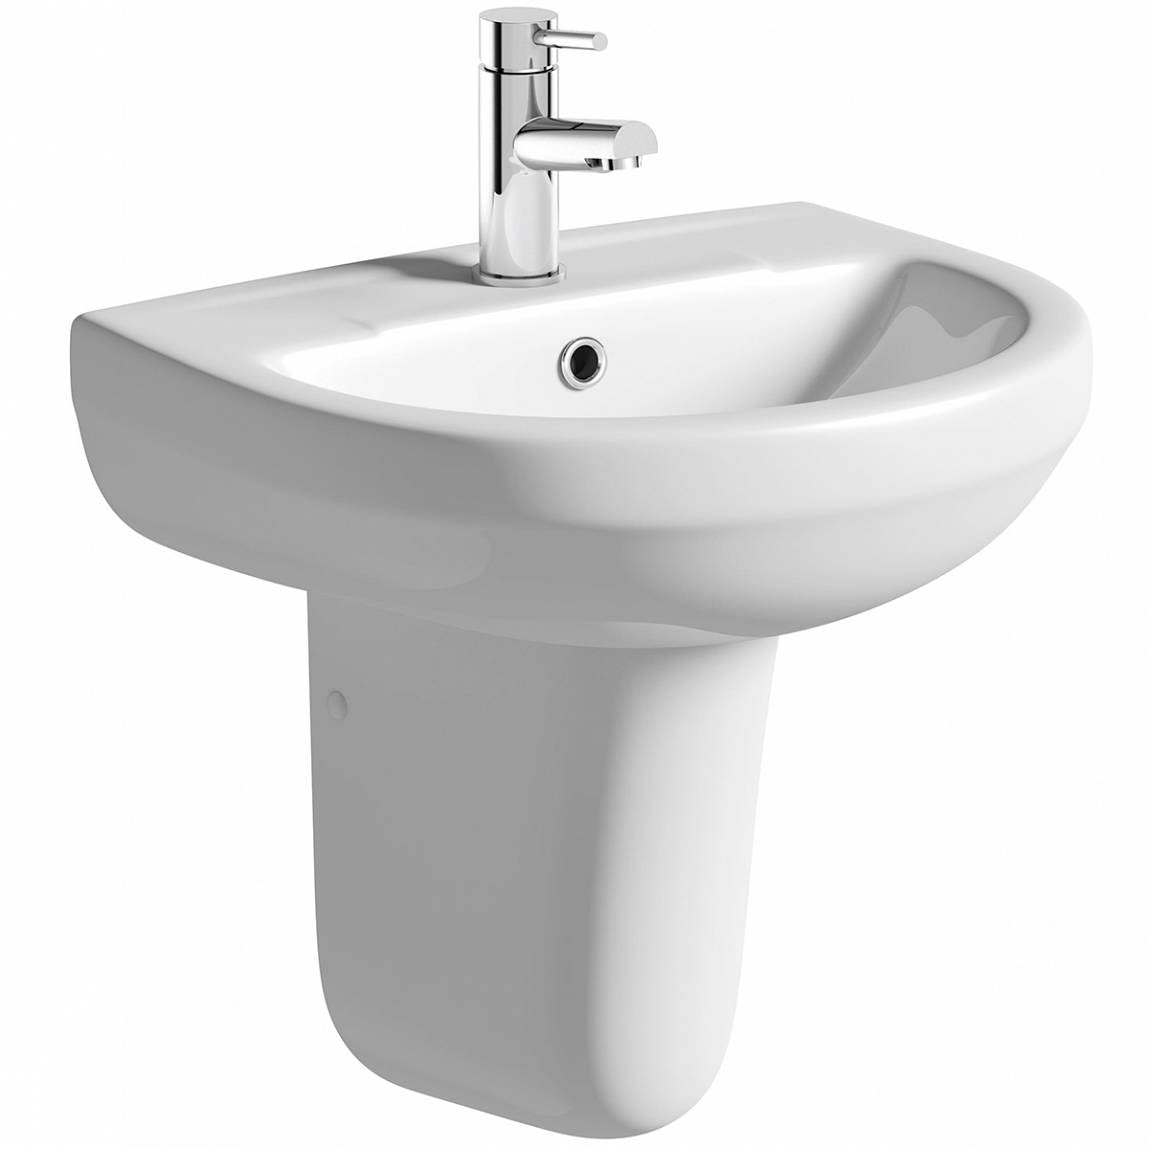 Eden 1 tap hole semi pedestal basin 550mm with waste